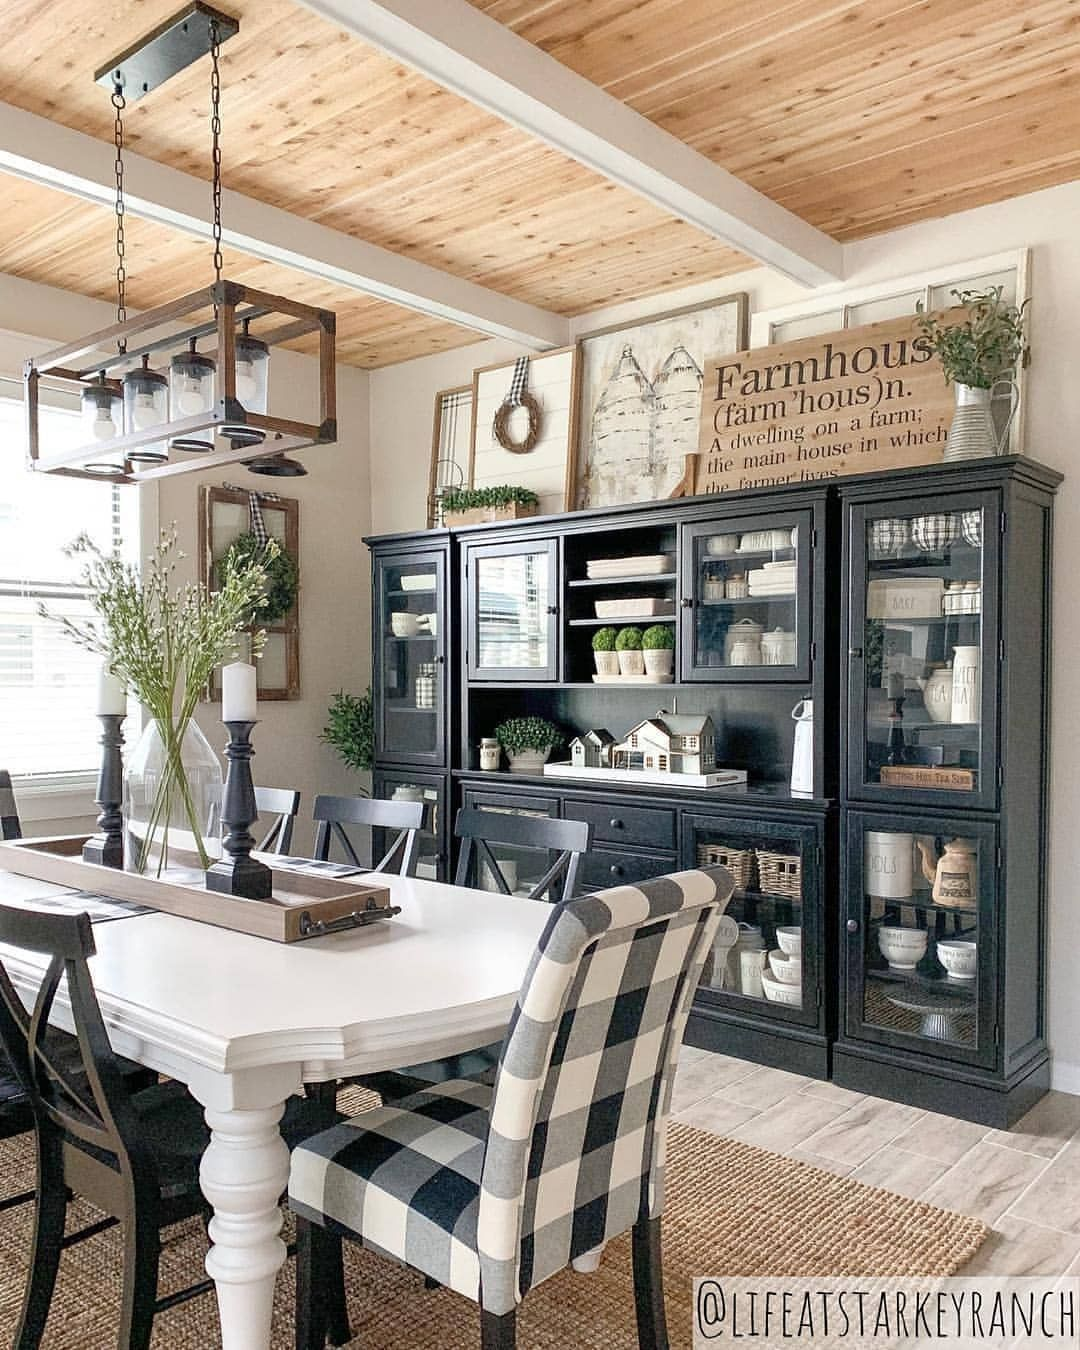 This Dining Room Is Farmhouse Goals What Do You Think Of This